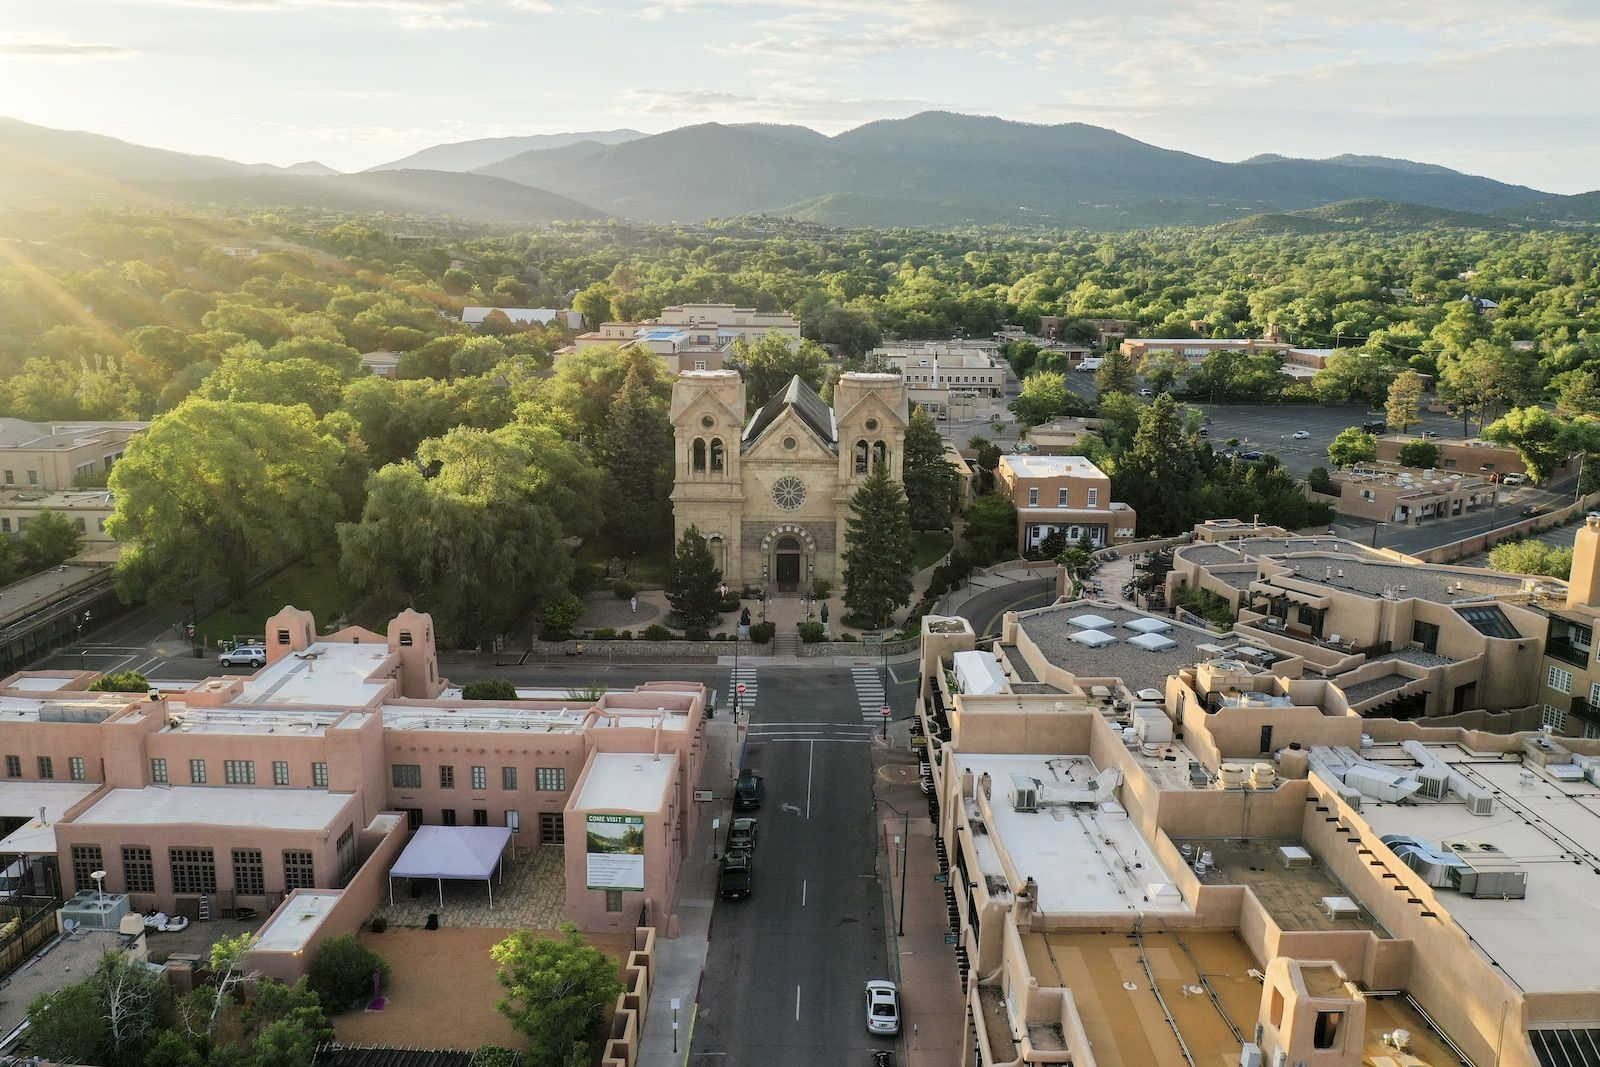 12 surprising facts about Santa Fe